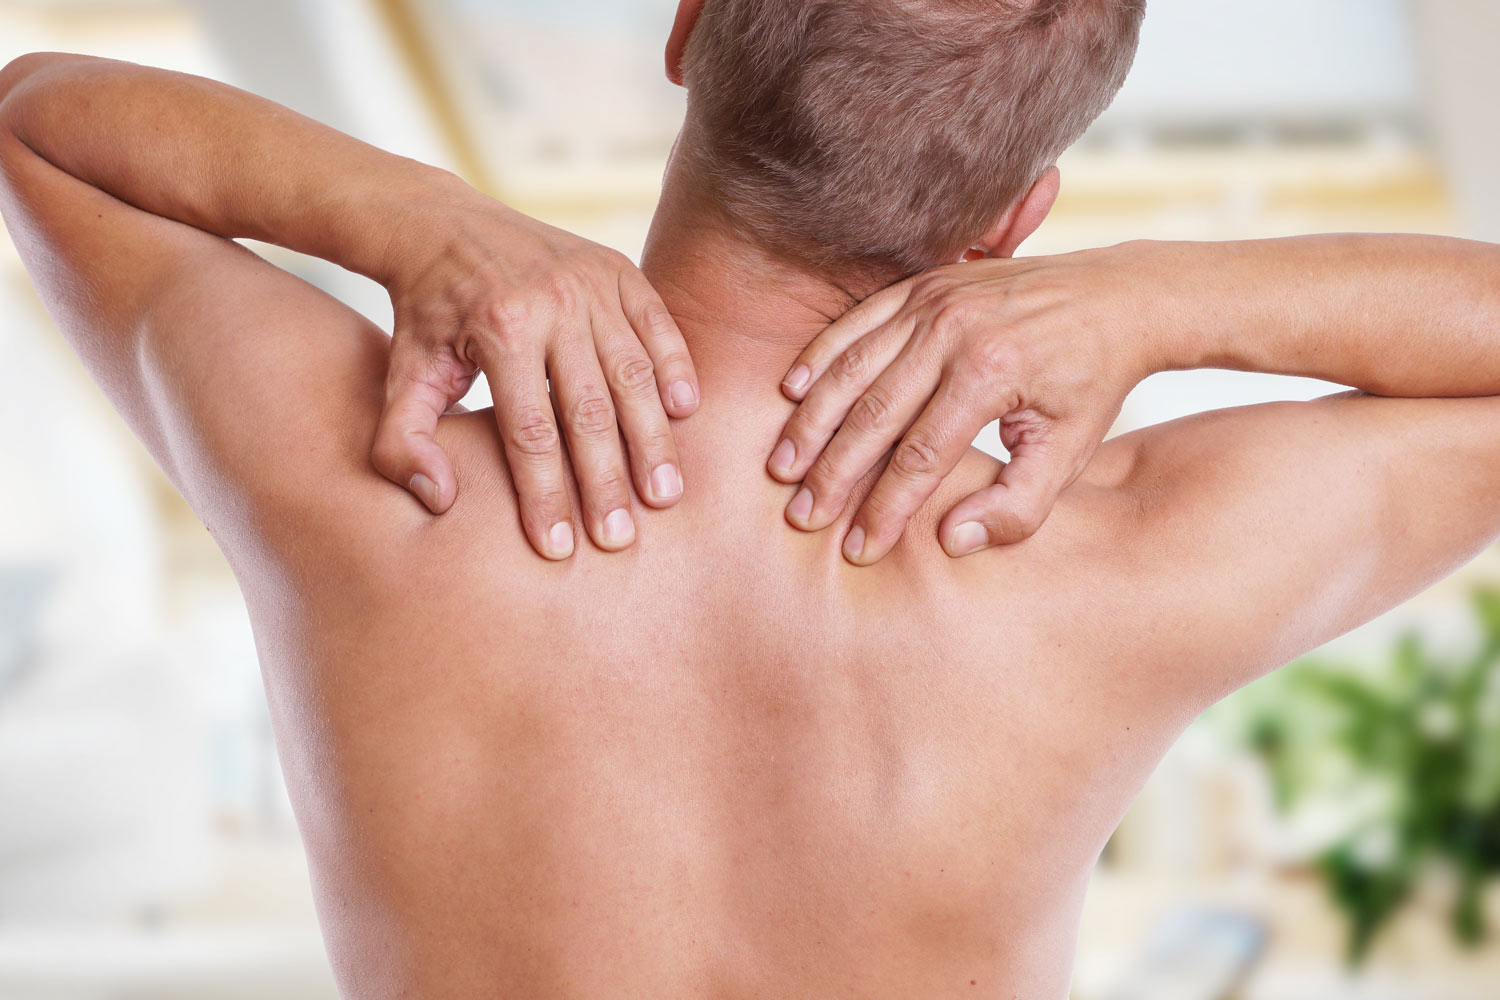 "<a href=""/back-and-neck""><strong>BACK & NECK PAIN</strong><a>"